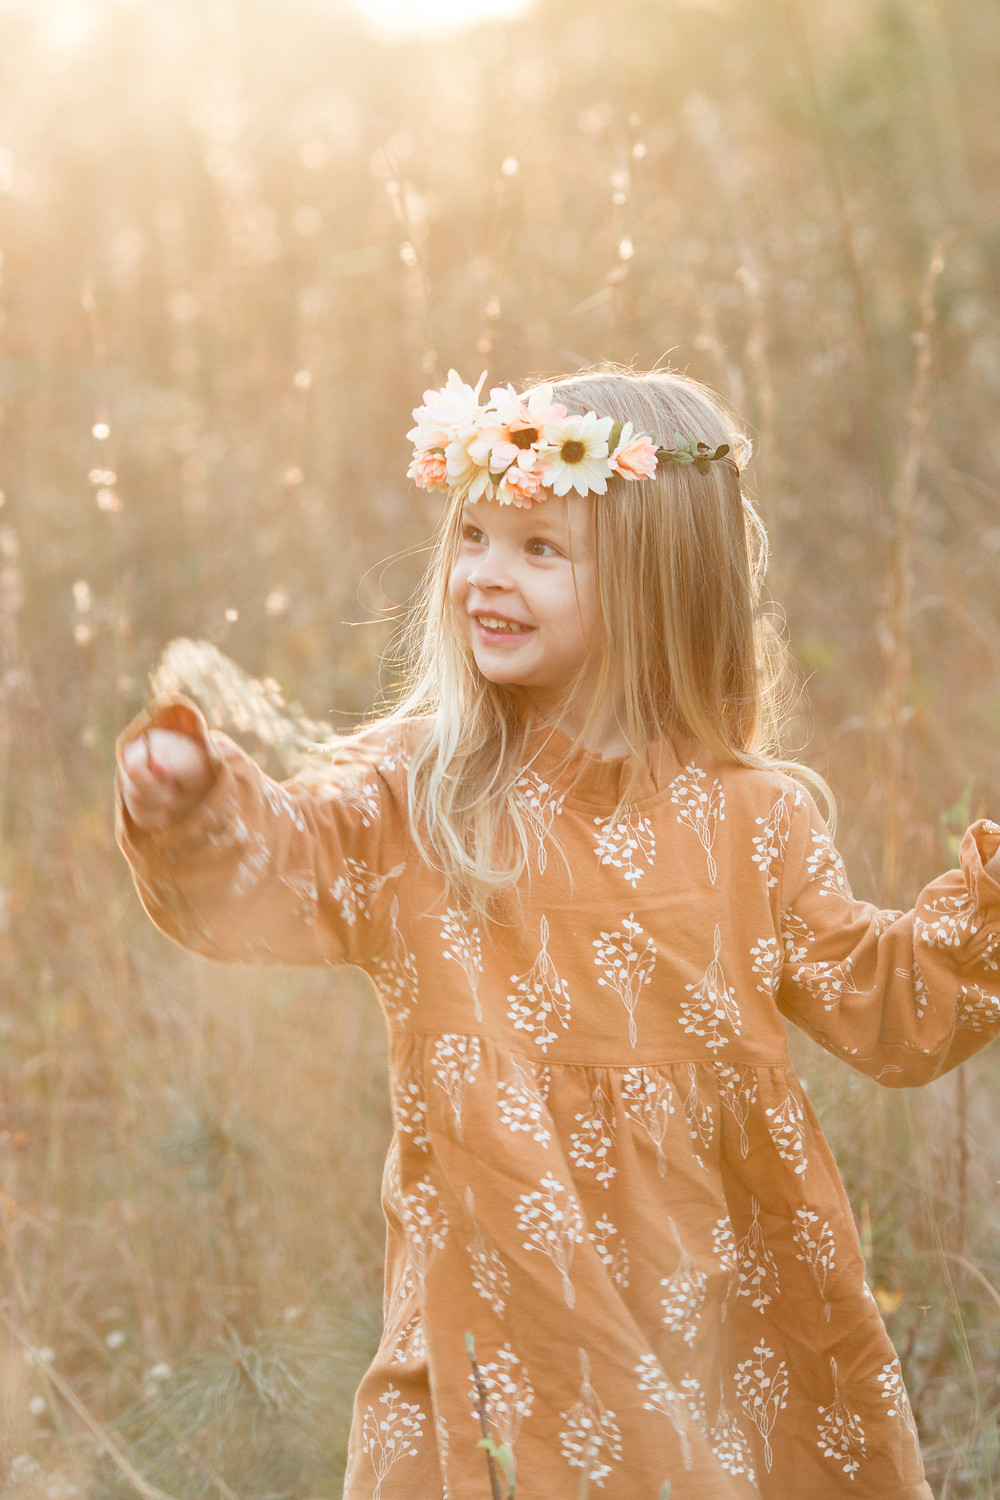 Little girl smiles wearing a flower crown in a grassy field, London Adelaide family photography, Asheville family photographers, tips for planning family photos, lifestyle blog